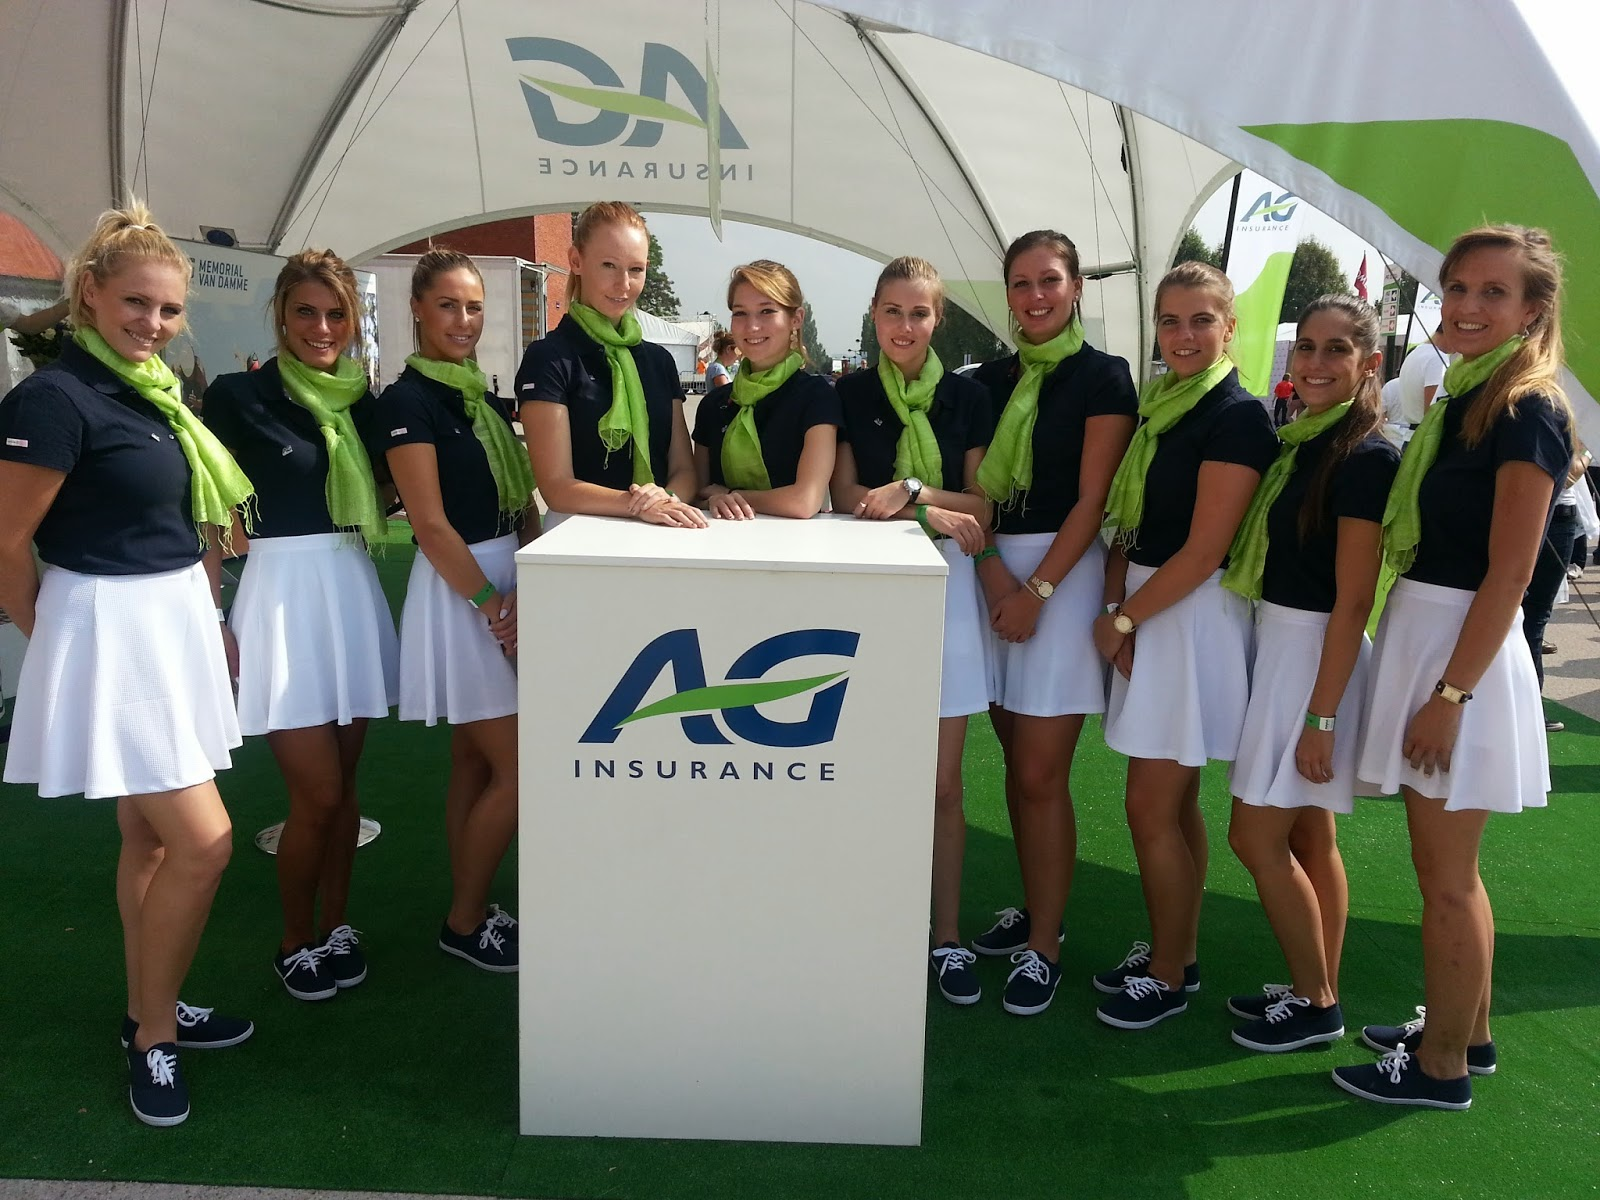 AG Insurance @ Memorial Van Damme i.o.v. Valor